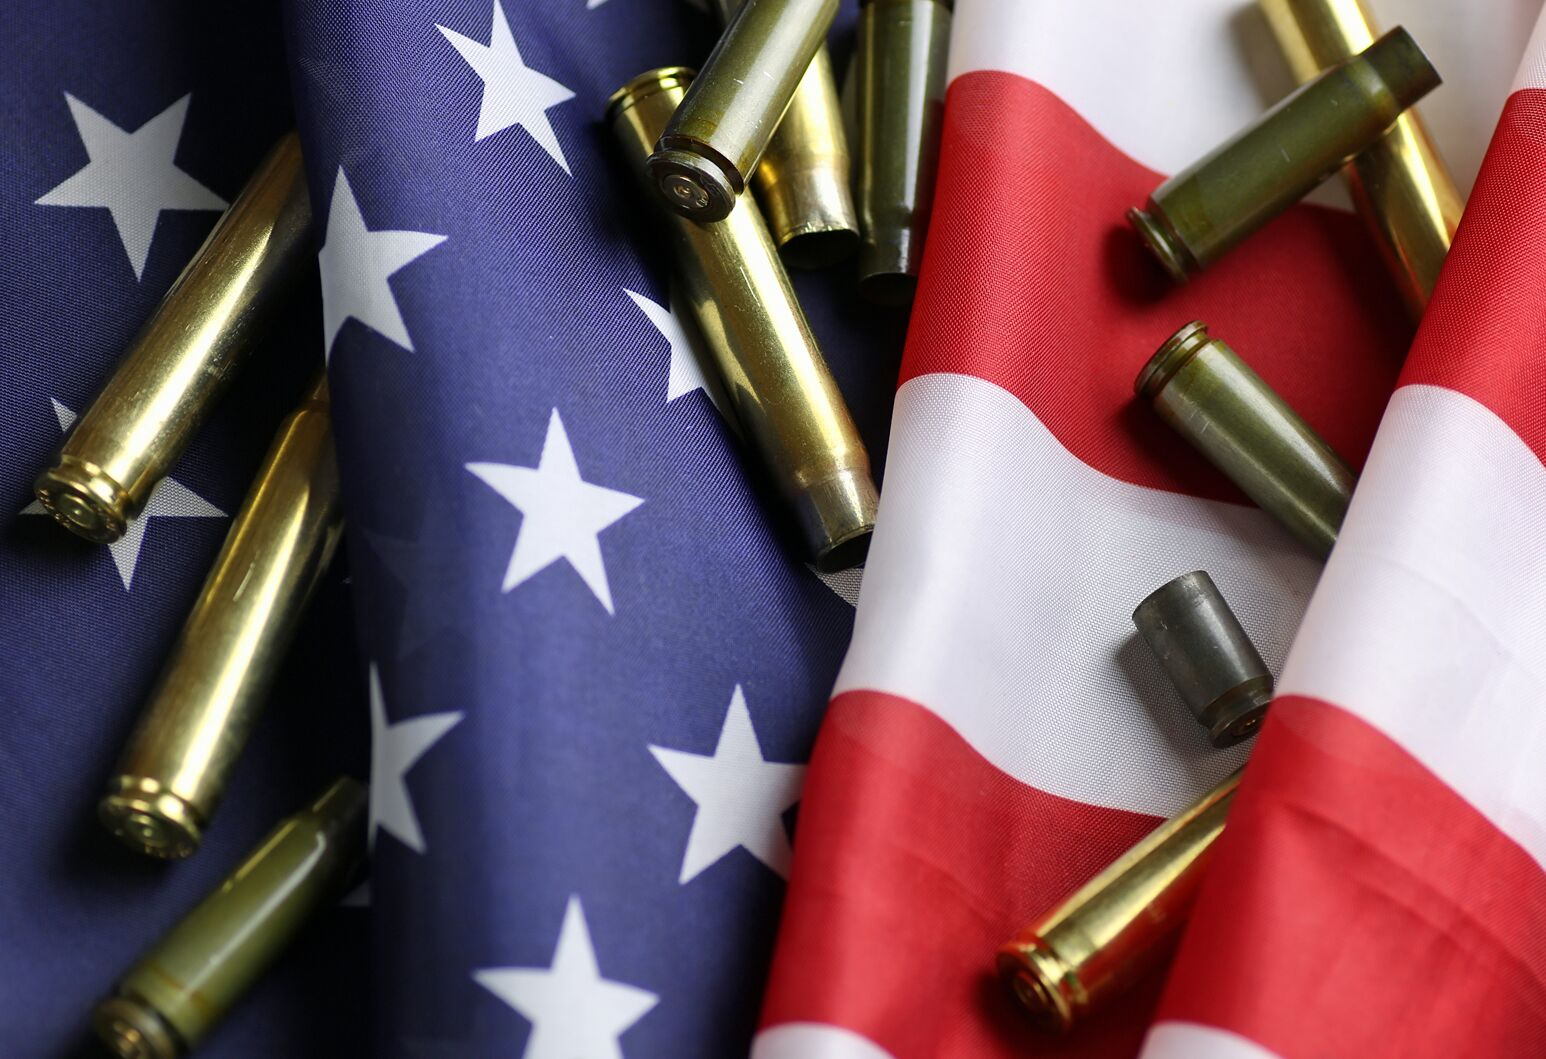 High-caliber bullets are spread out across an American flag. Michael Dowling questions where health care CEOs stand in the fight against gun violence